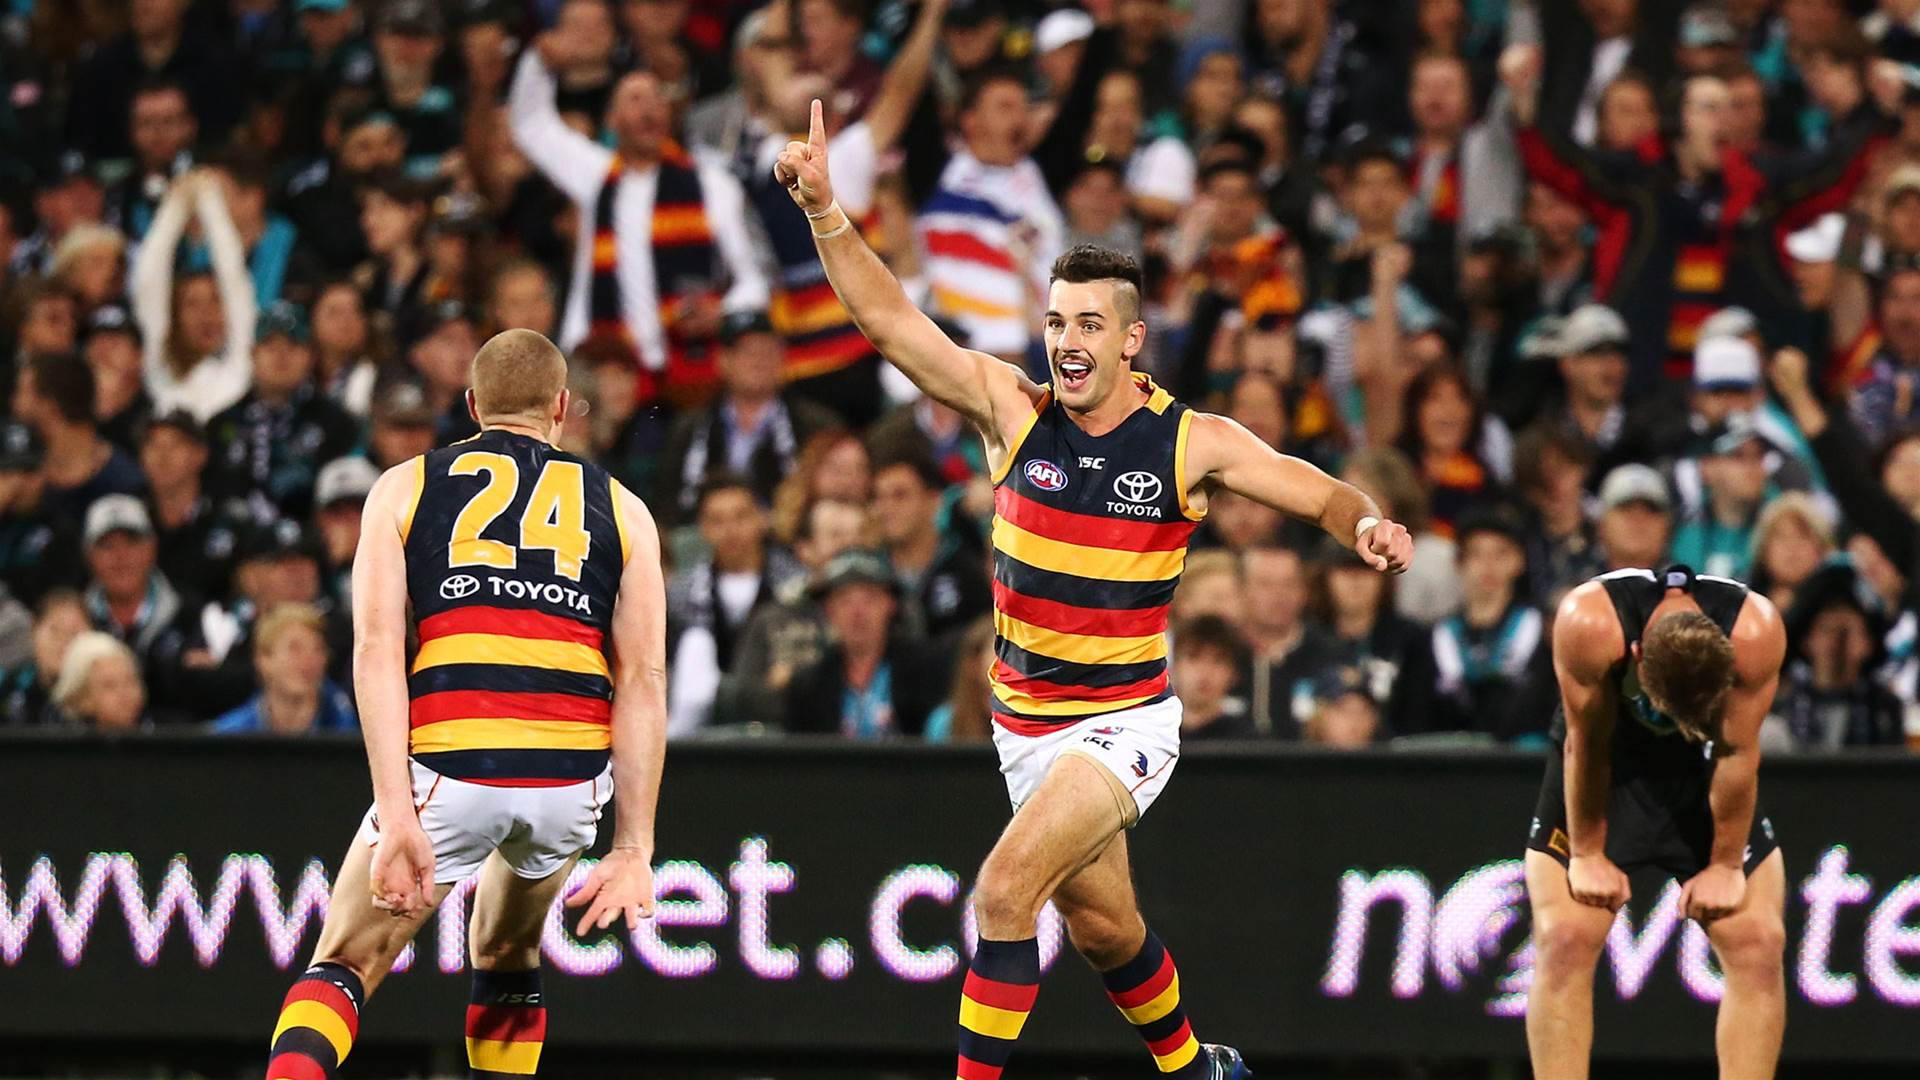 A night out at Adelaide's Showdown